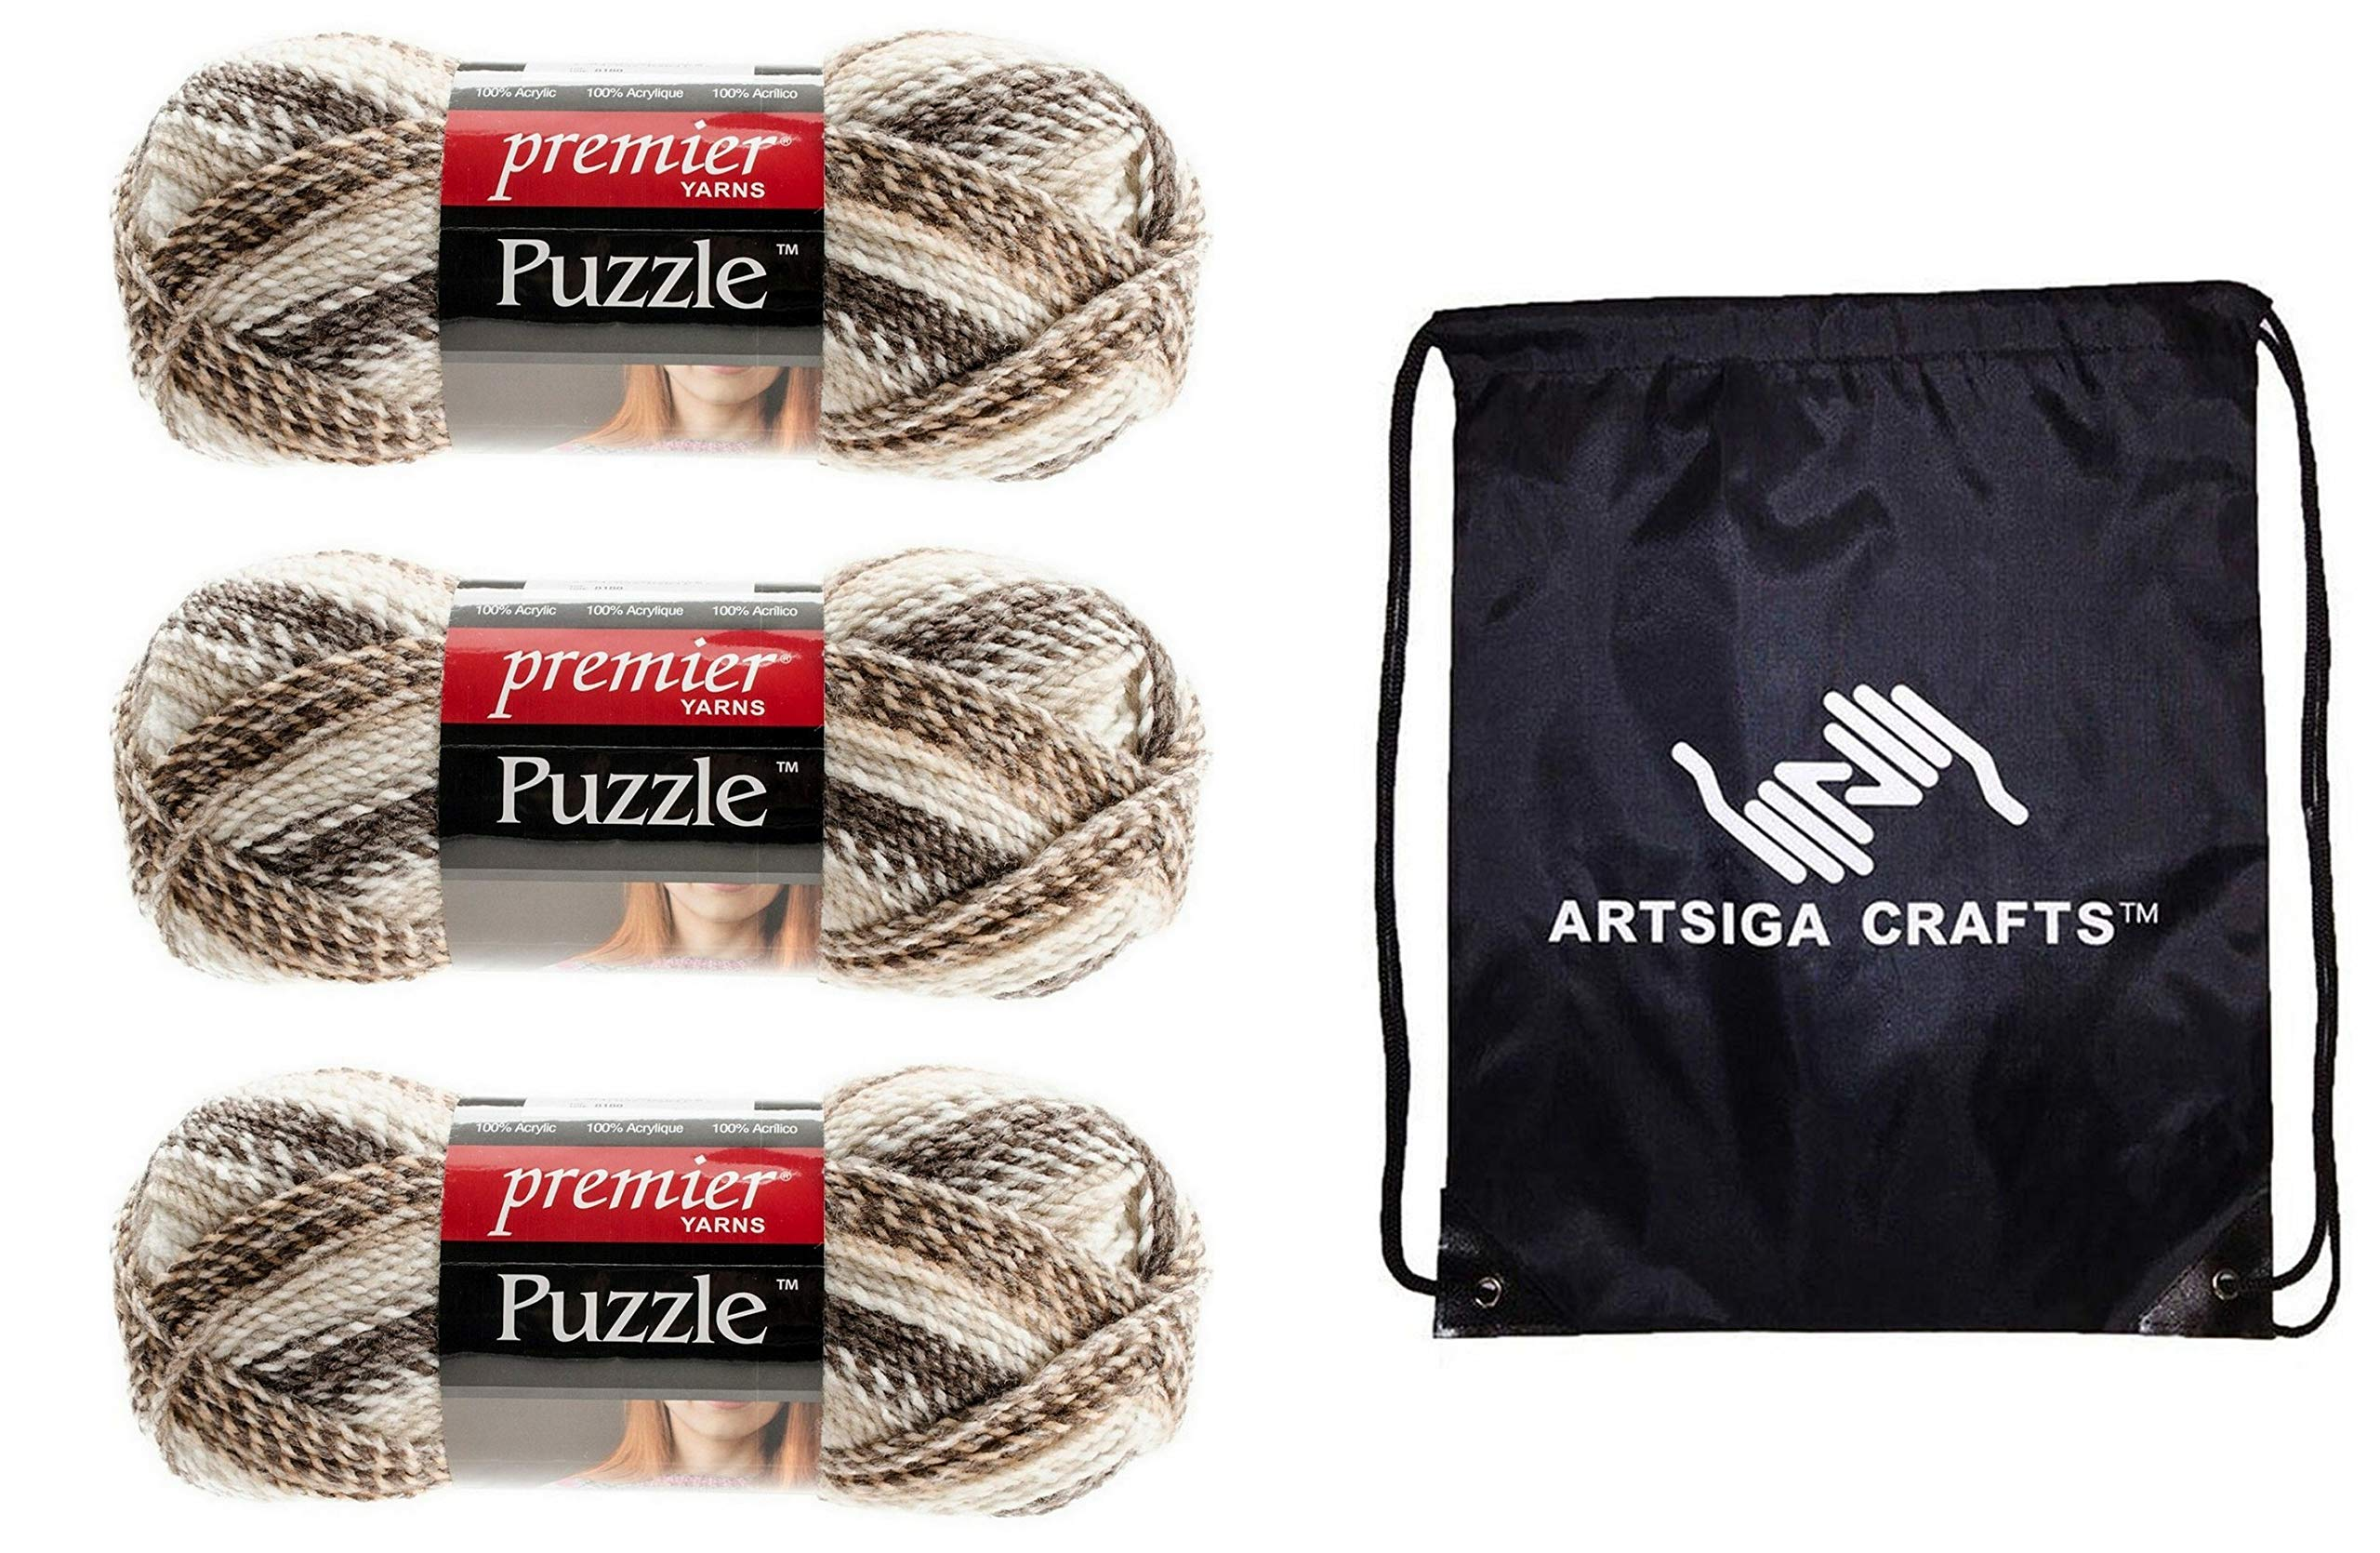 Premier Knitting Yarn Puzzle Crossword 3-Skein Factory Pack (Same Dye Lot) 1050-03 Bundle with 1 Artsiga Crafts Project Bag